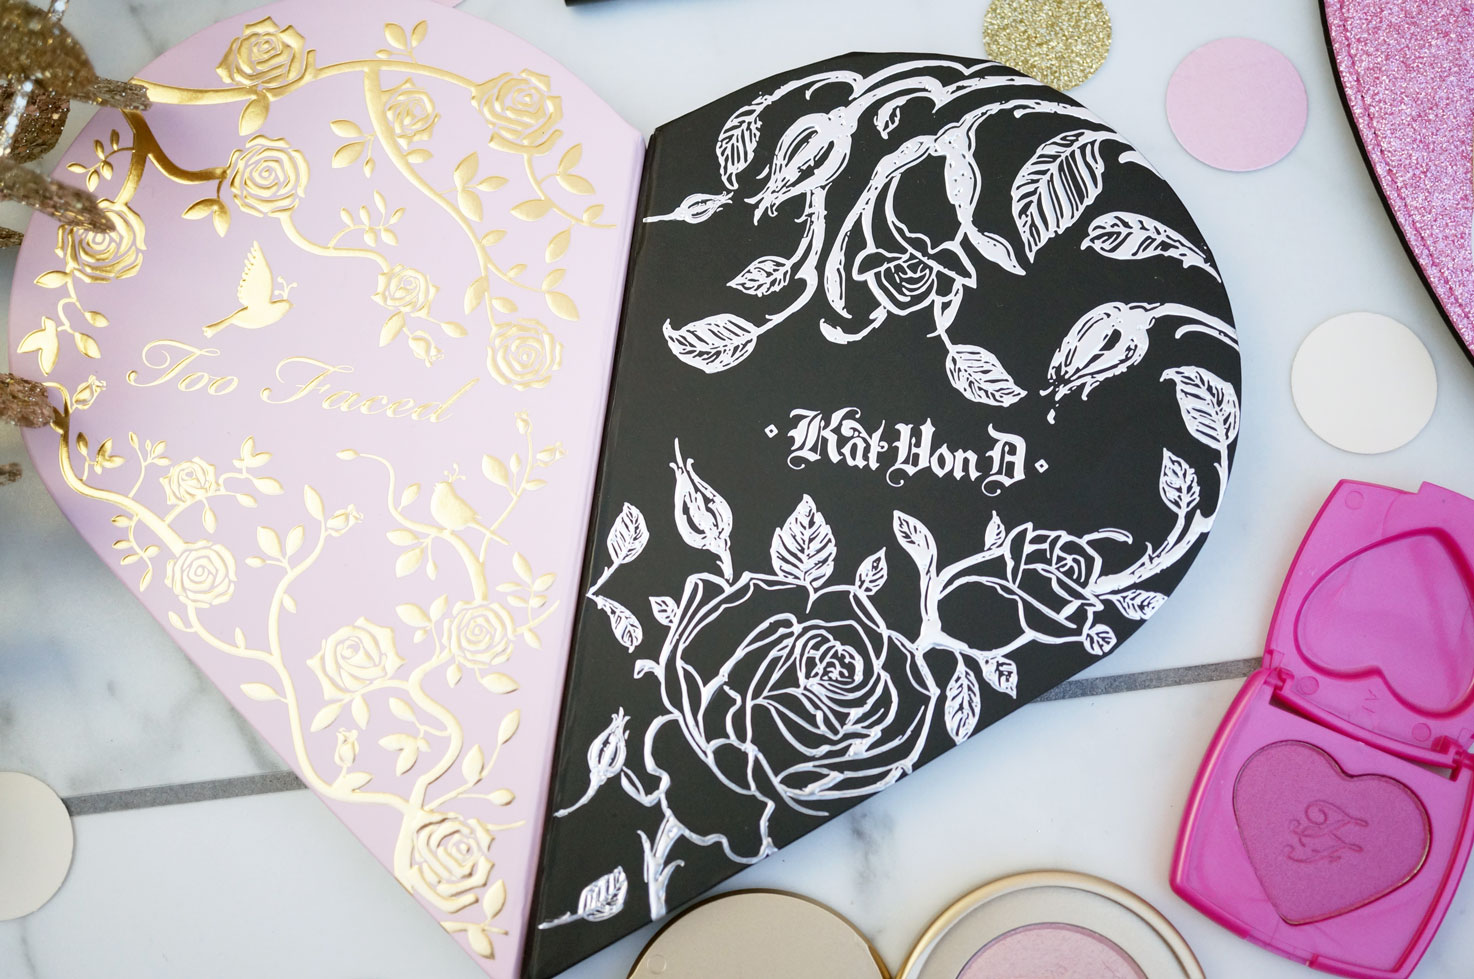 Beauty Too Faced X Kat Von D Better Together Collection